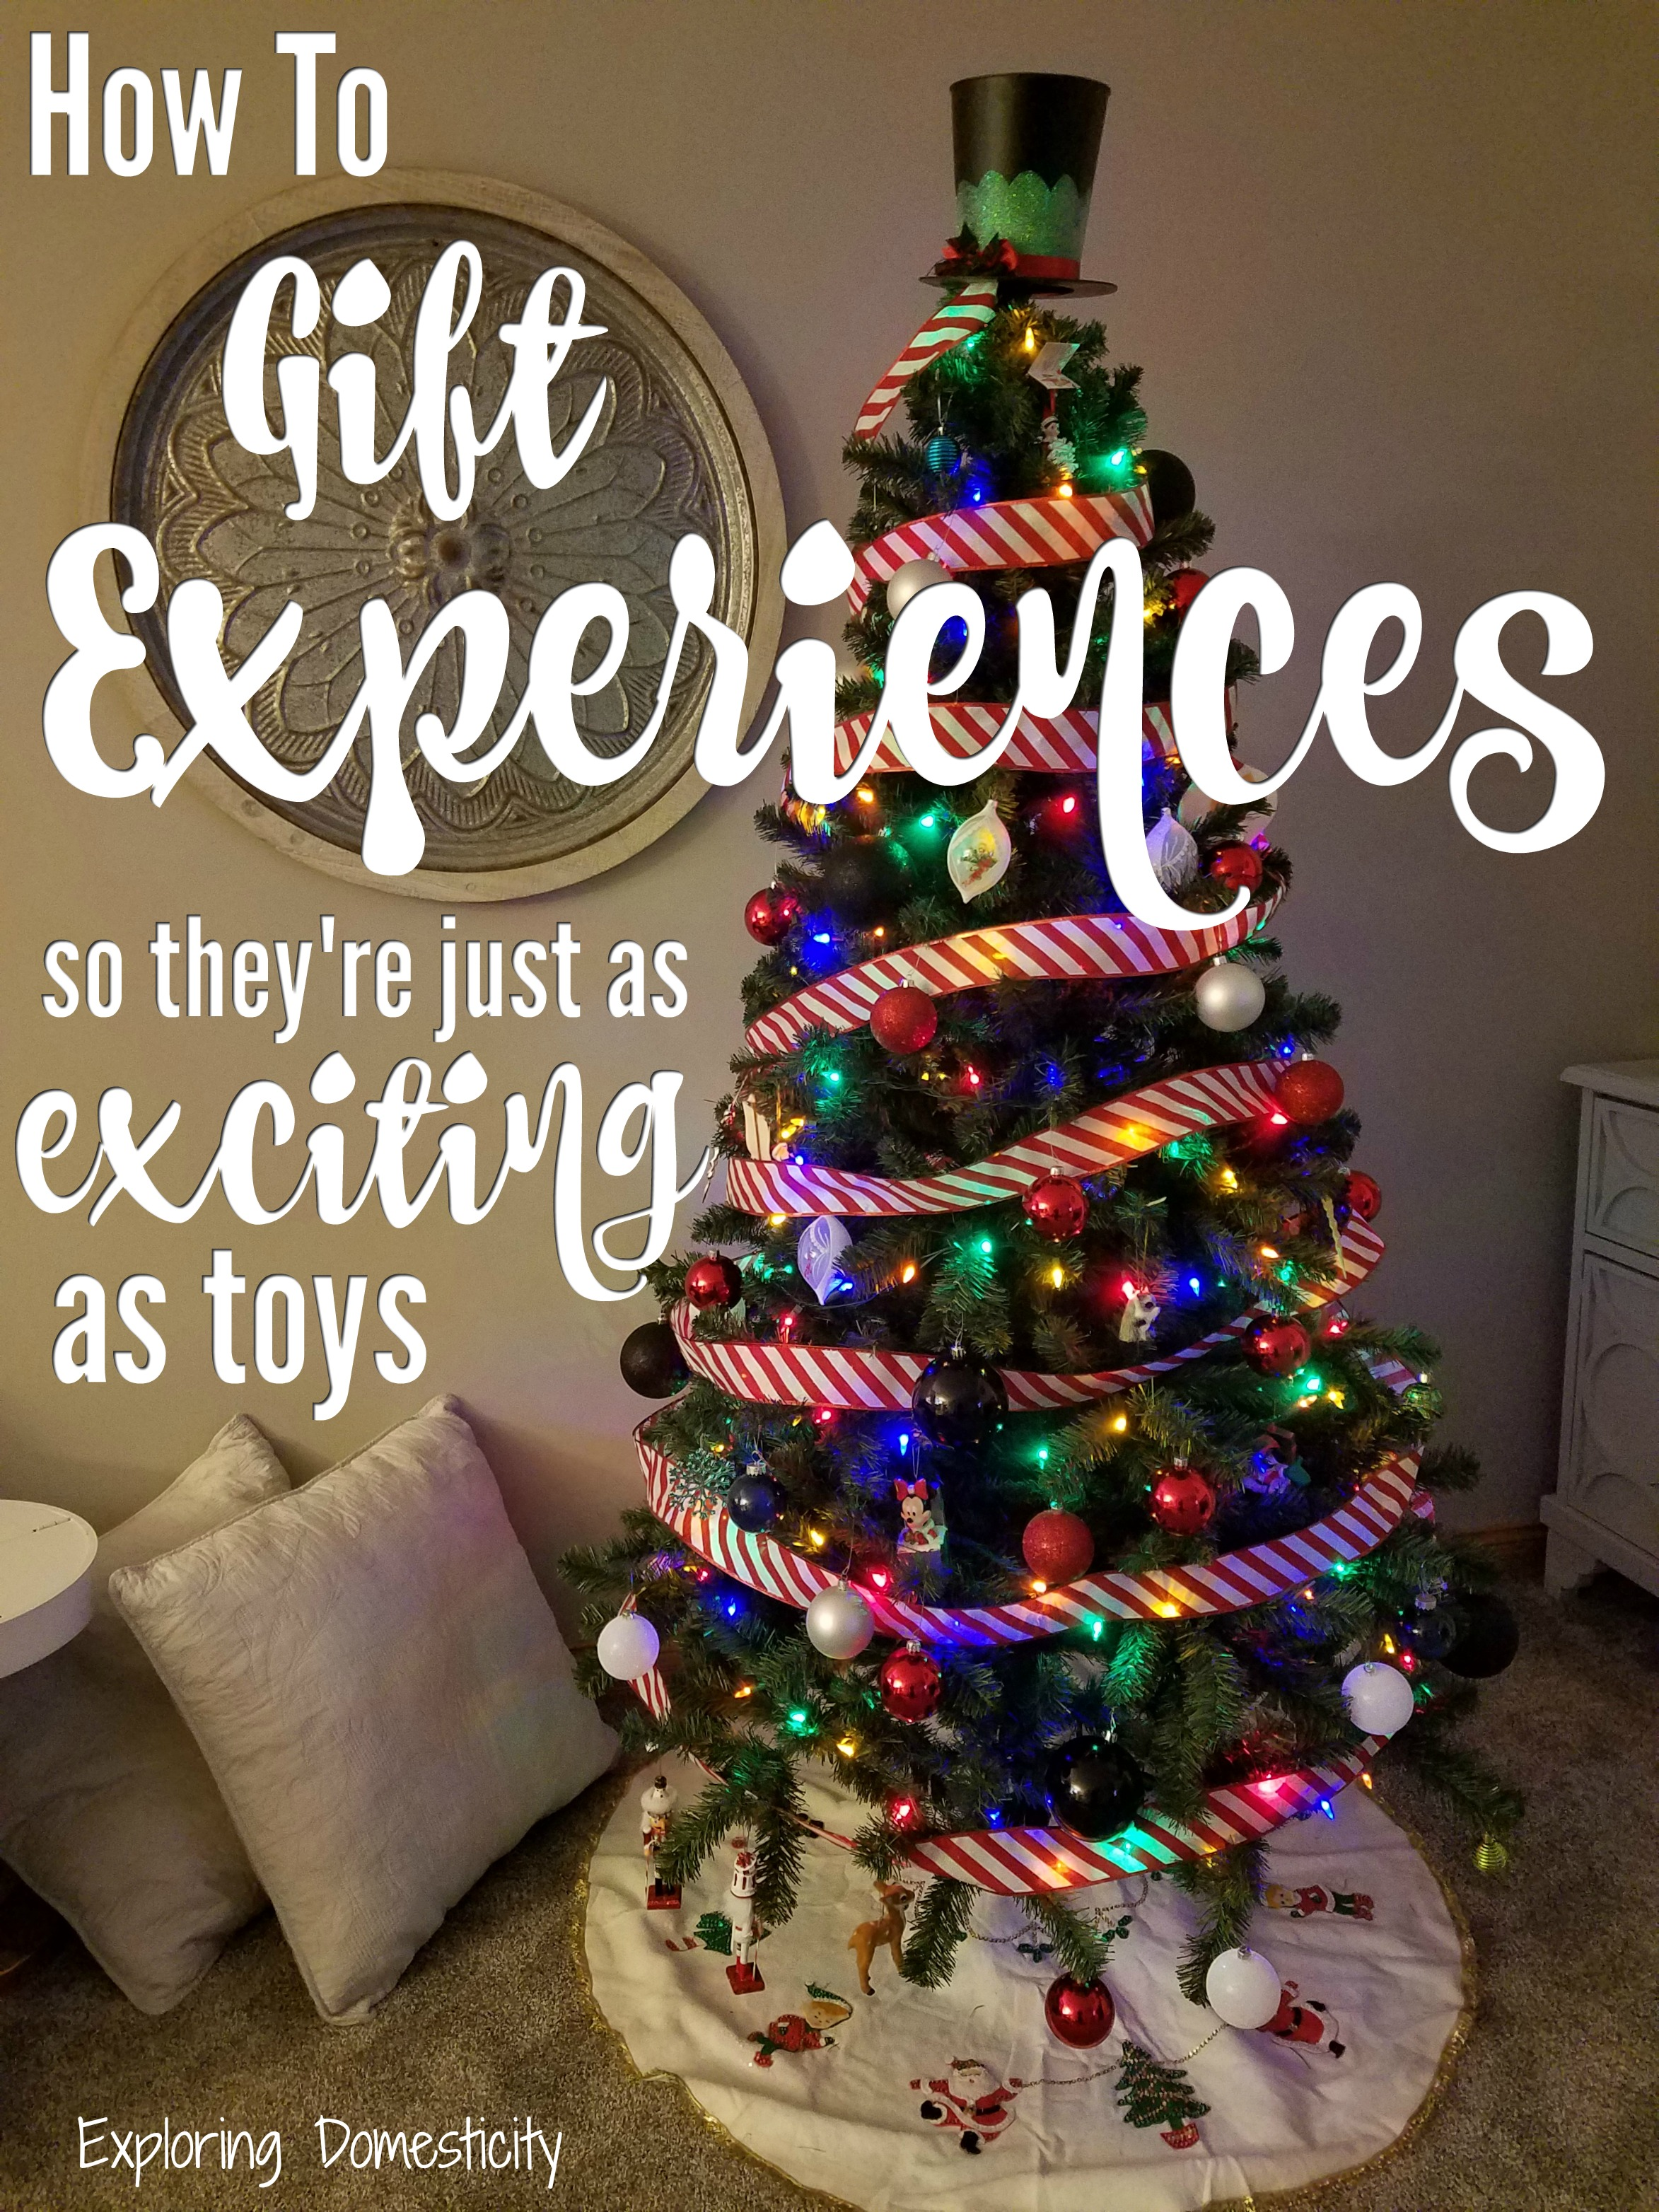 how to gift experiences so they\'re just as exciting as toys